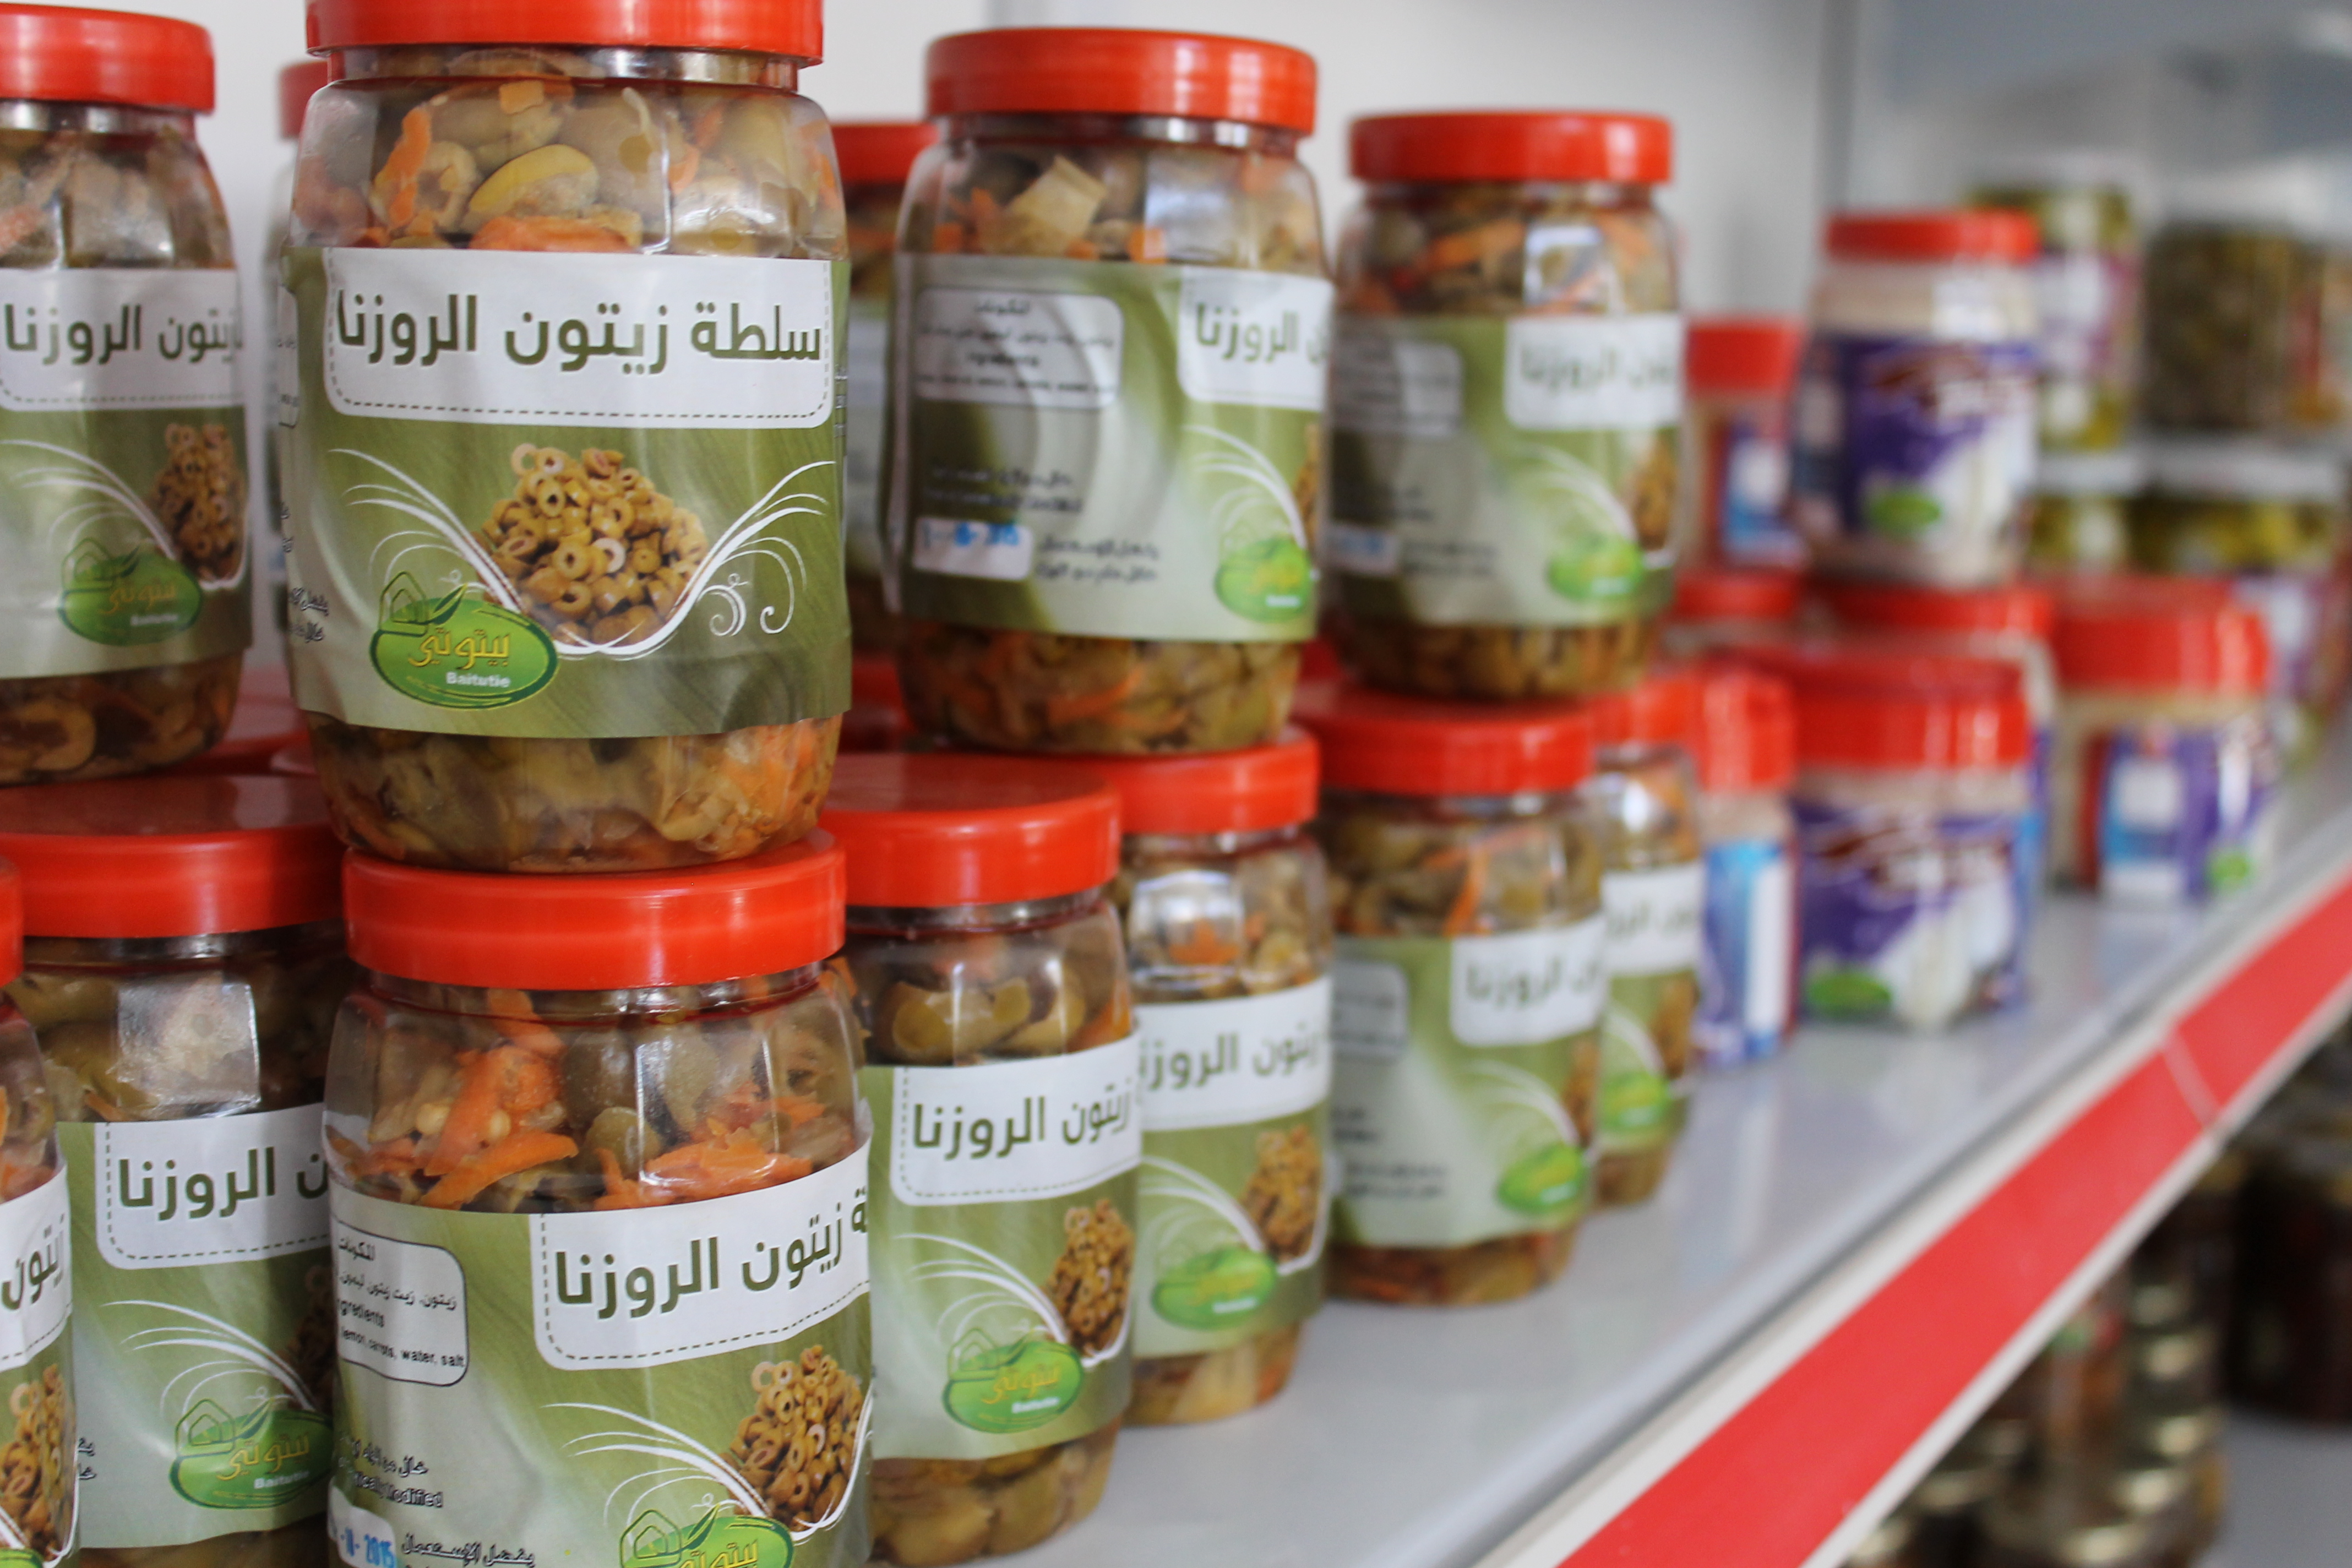 Olive salad that is a speciality of the Al Rozana run shop in Halhoul